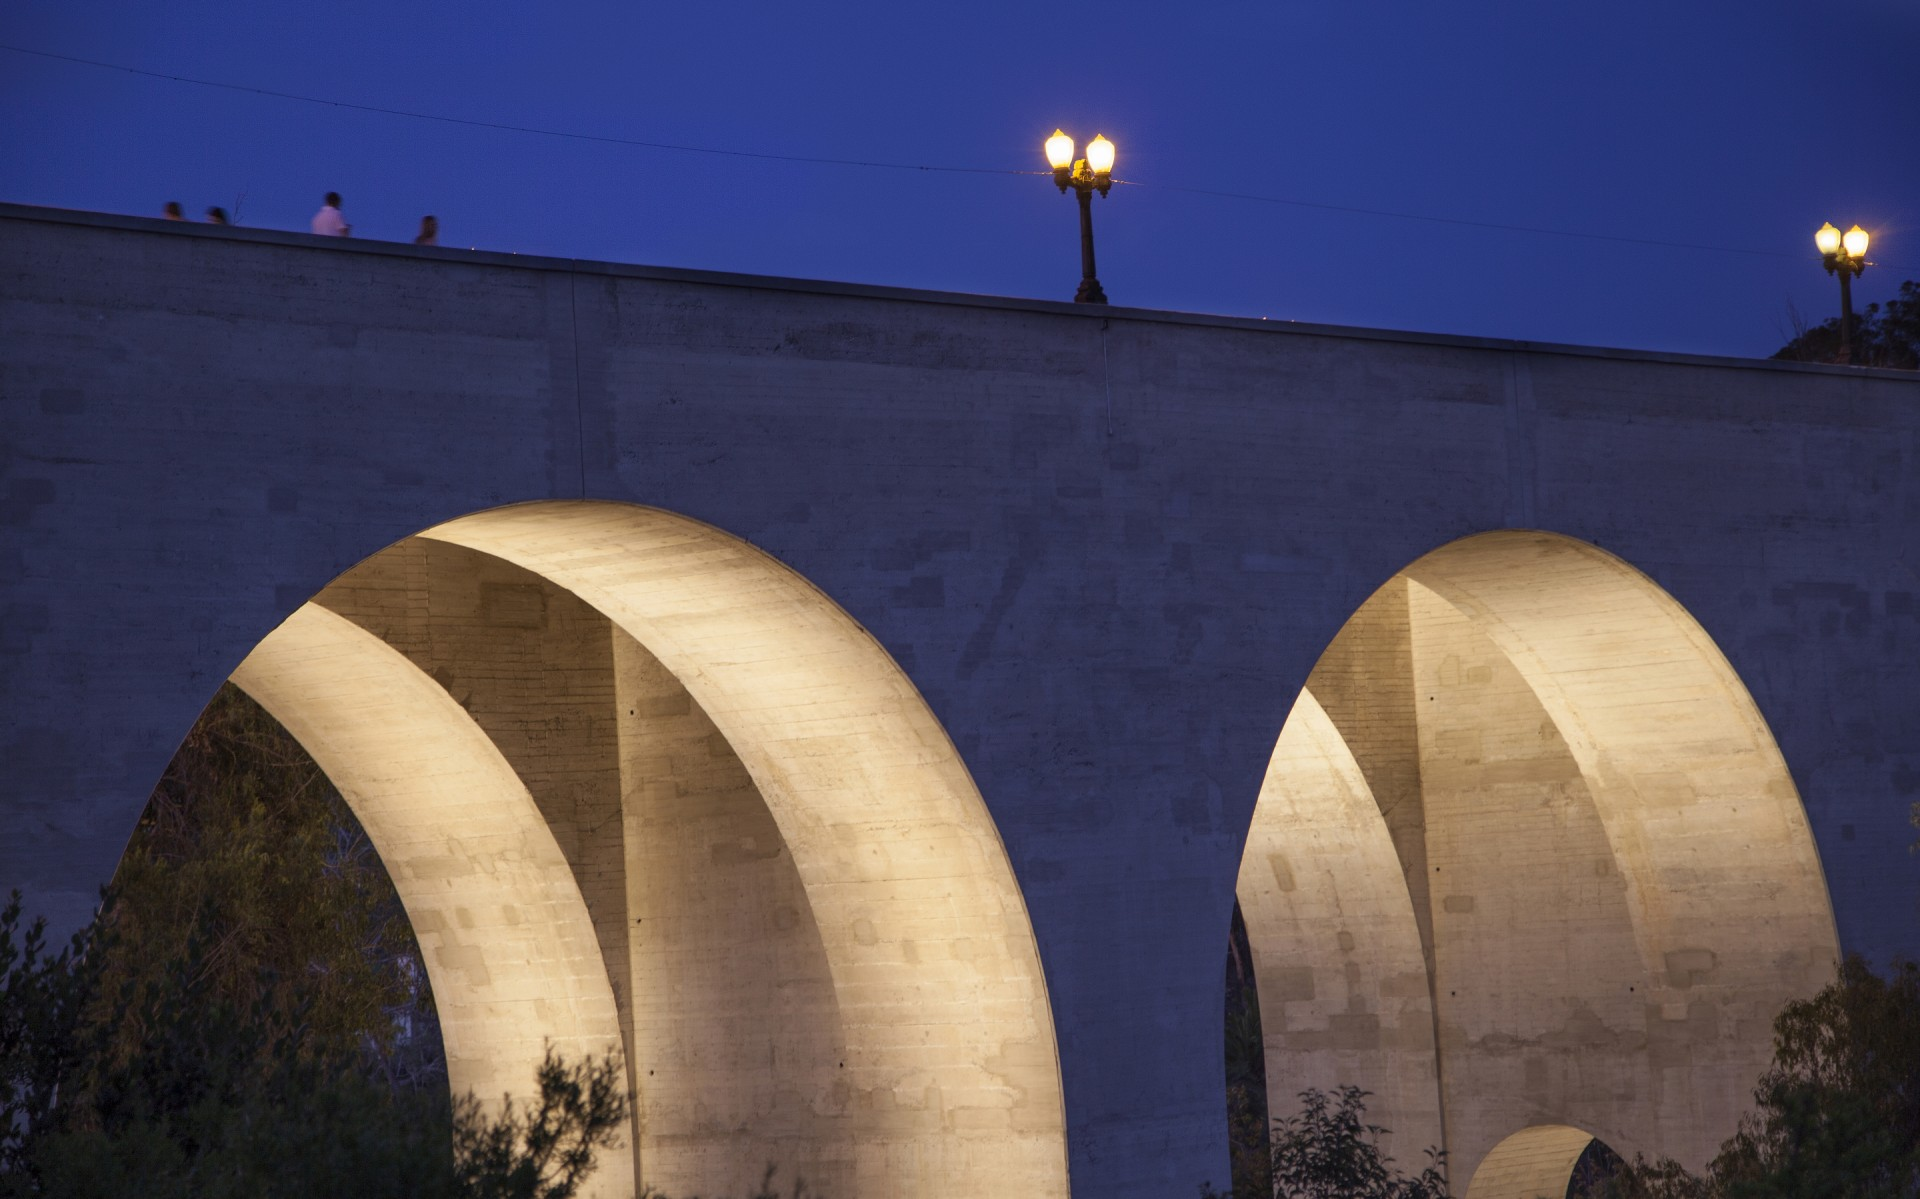 The undersides of the bridge's 46-foot-wide arches were cross-lit with Lumenbeam Large and Extra Large luminaires in 3000K.